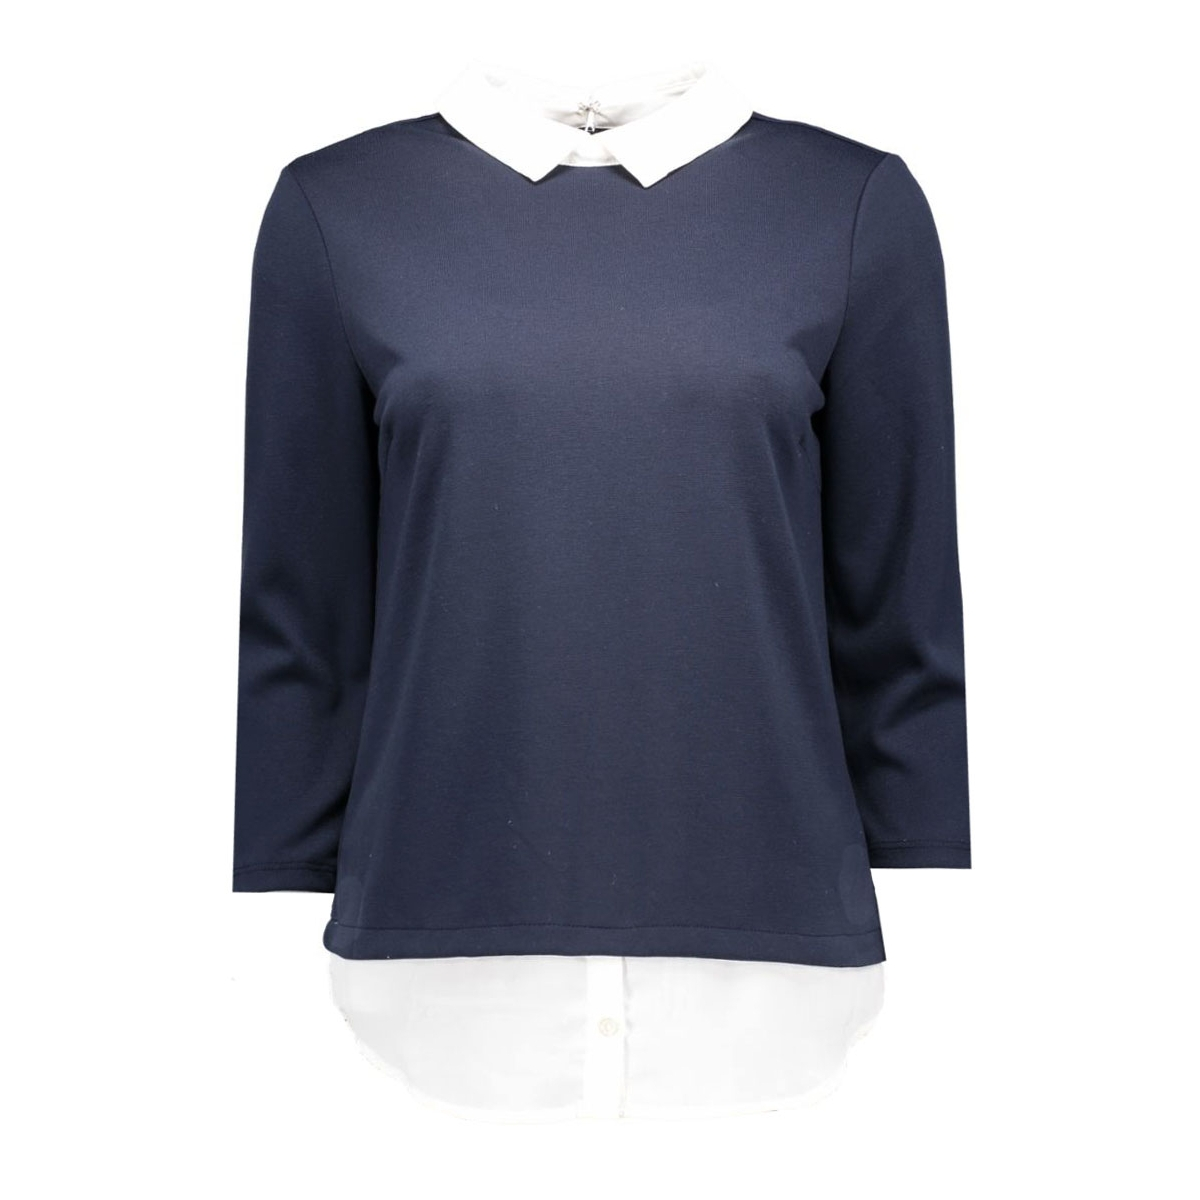 vitinny shirt detail top 14038394 vila t-shirt total eclipse